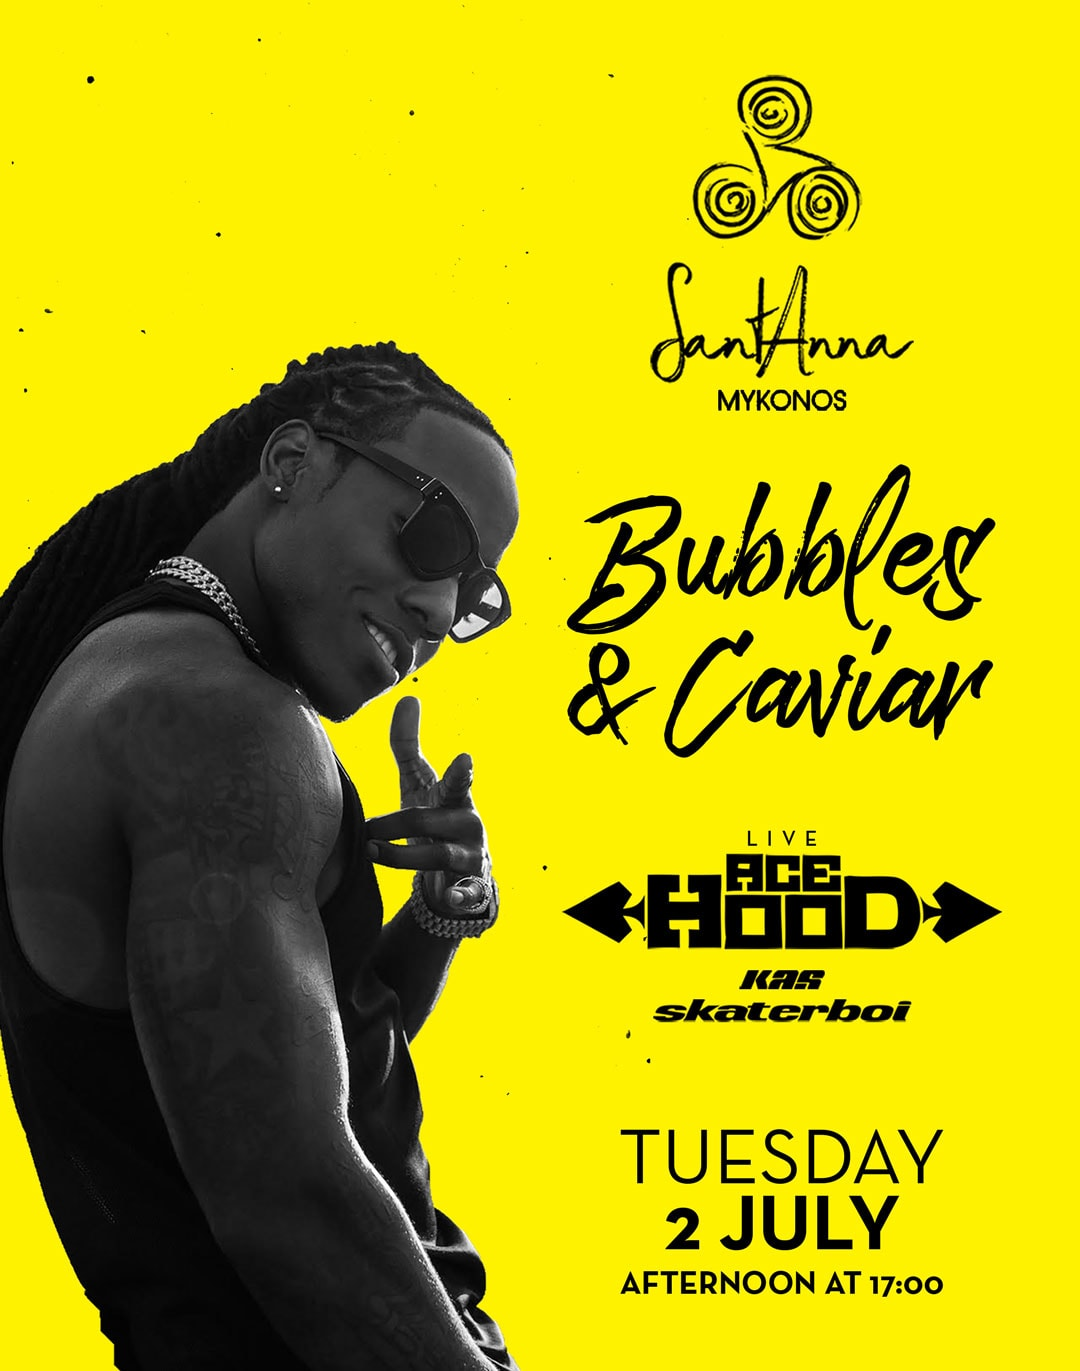 Santanna Mykonos Bubbles & Caviar with Ace Hood party